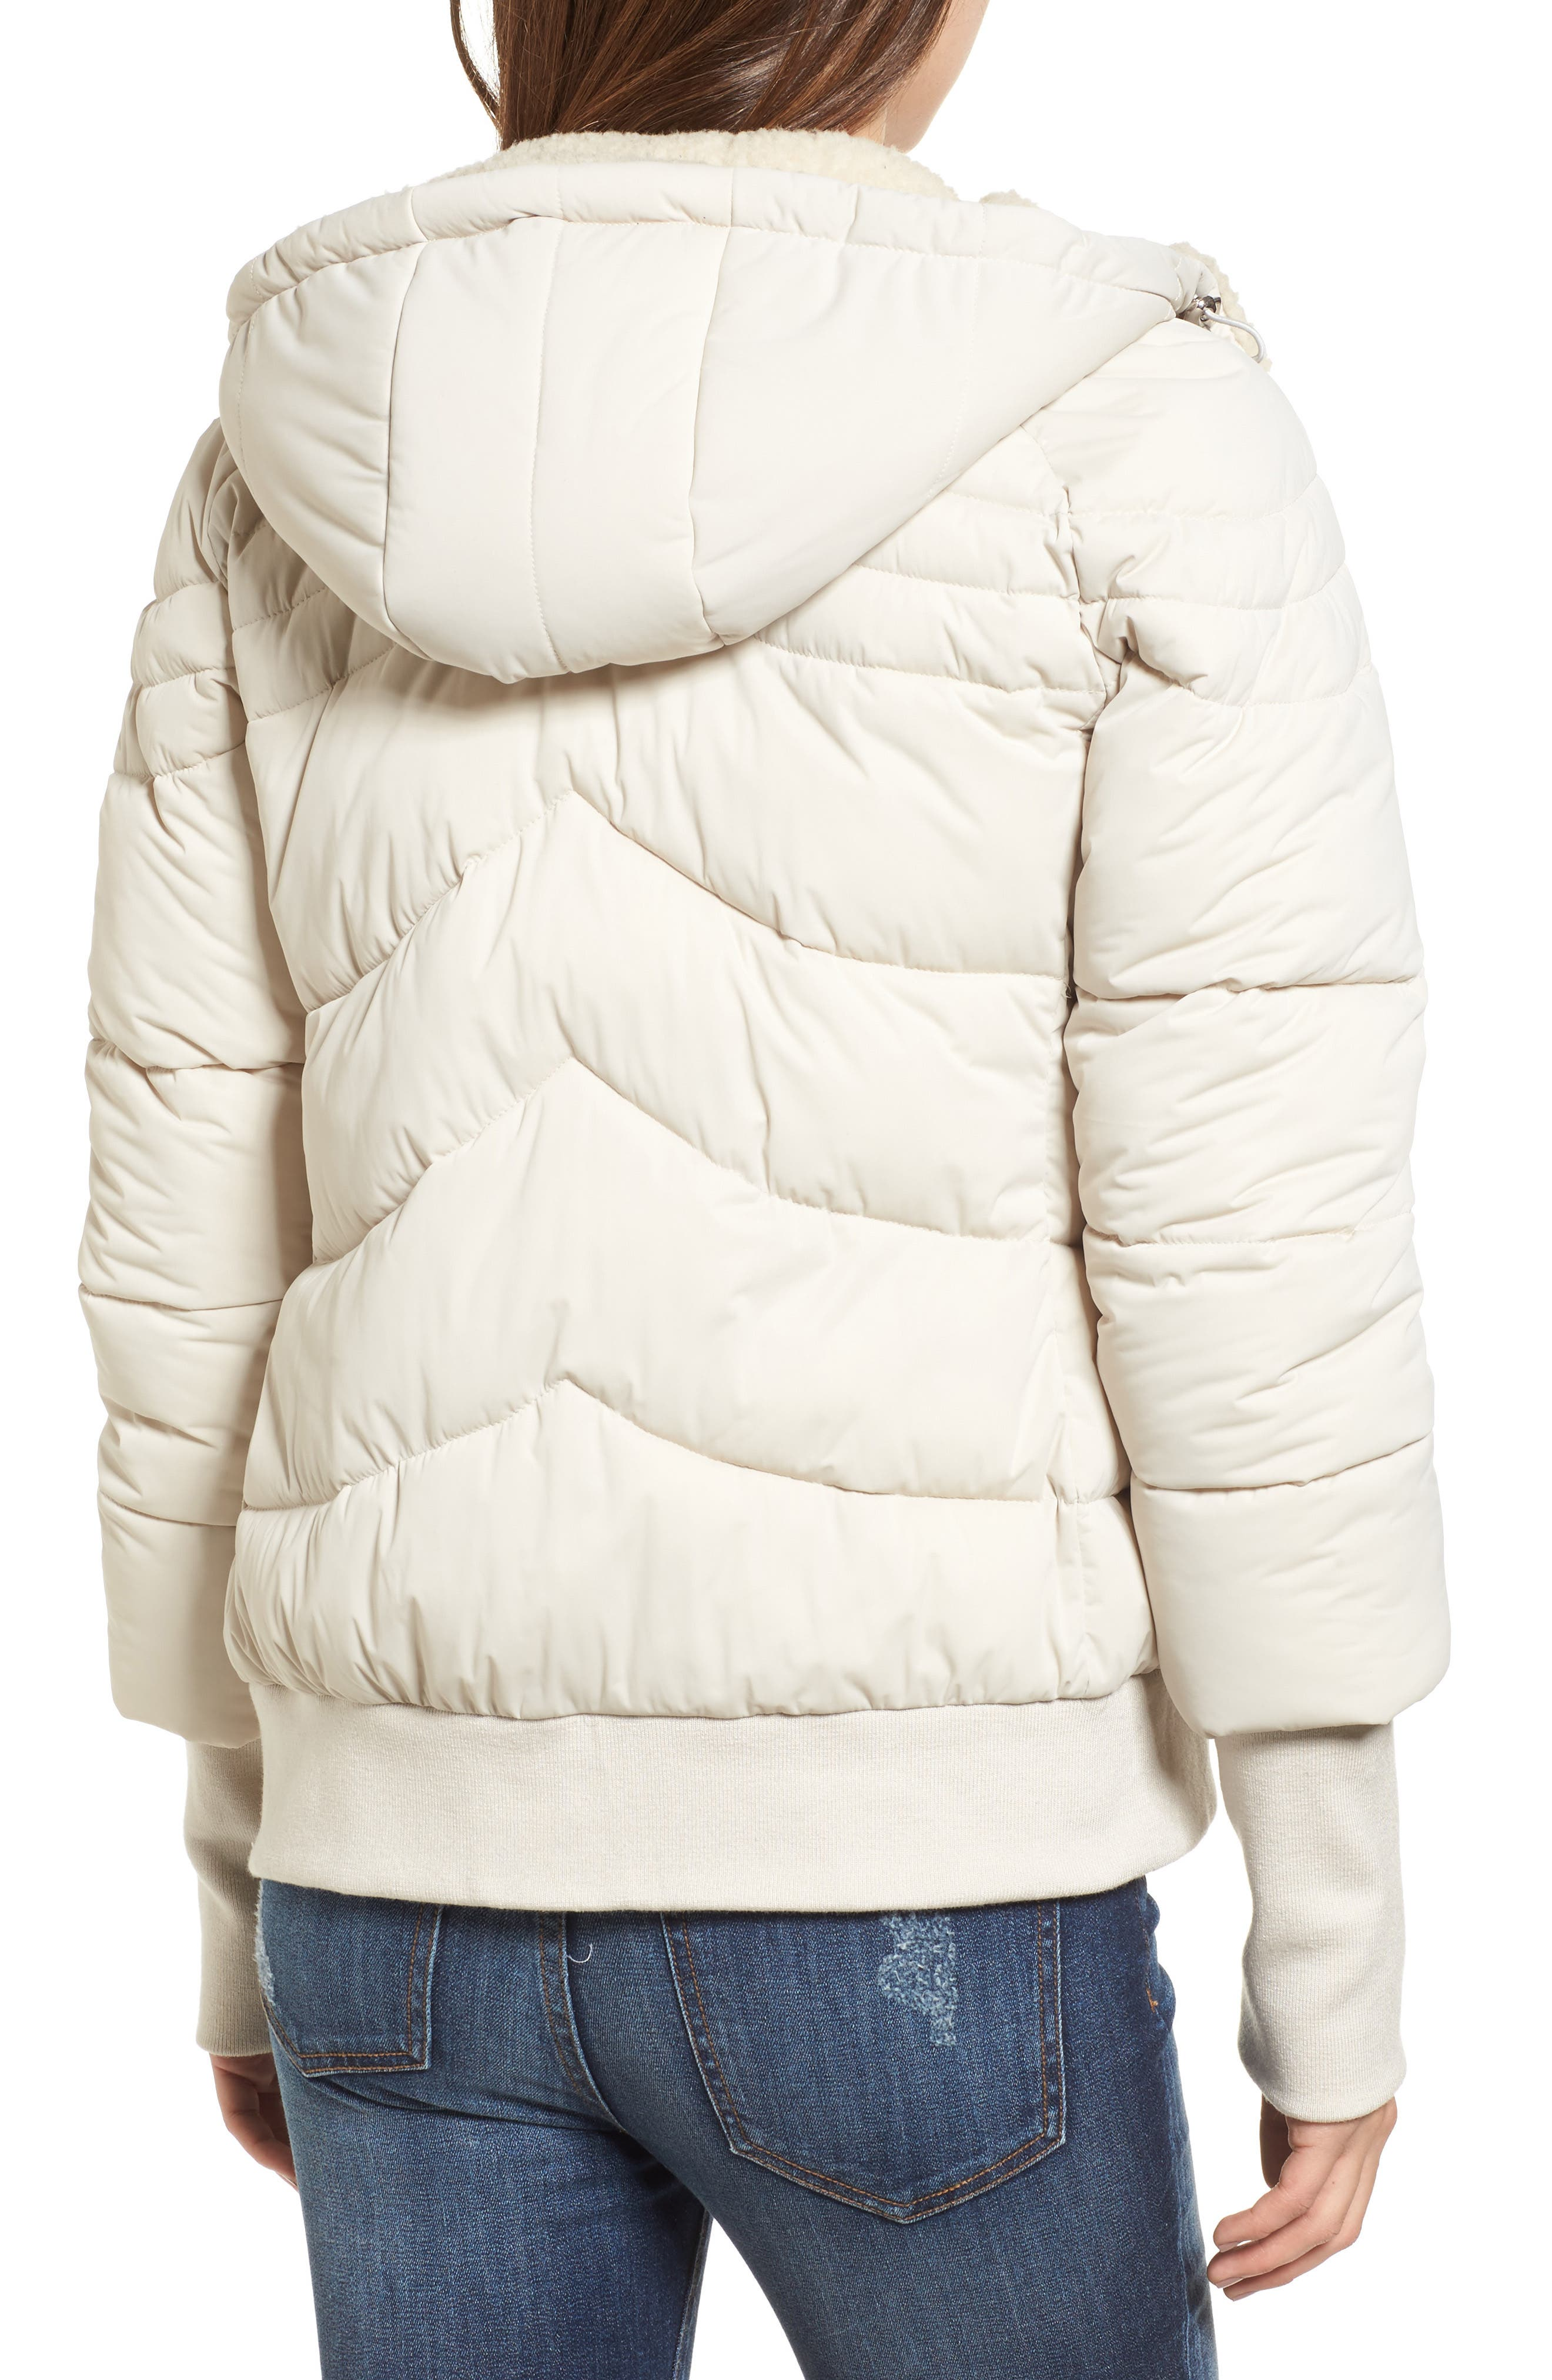 Alternate Image 2  - GUESS Oversize Hooded Puffer Jacket with Knit & Faux Shearling Trim